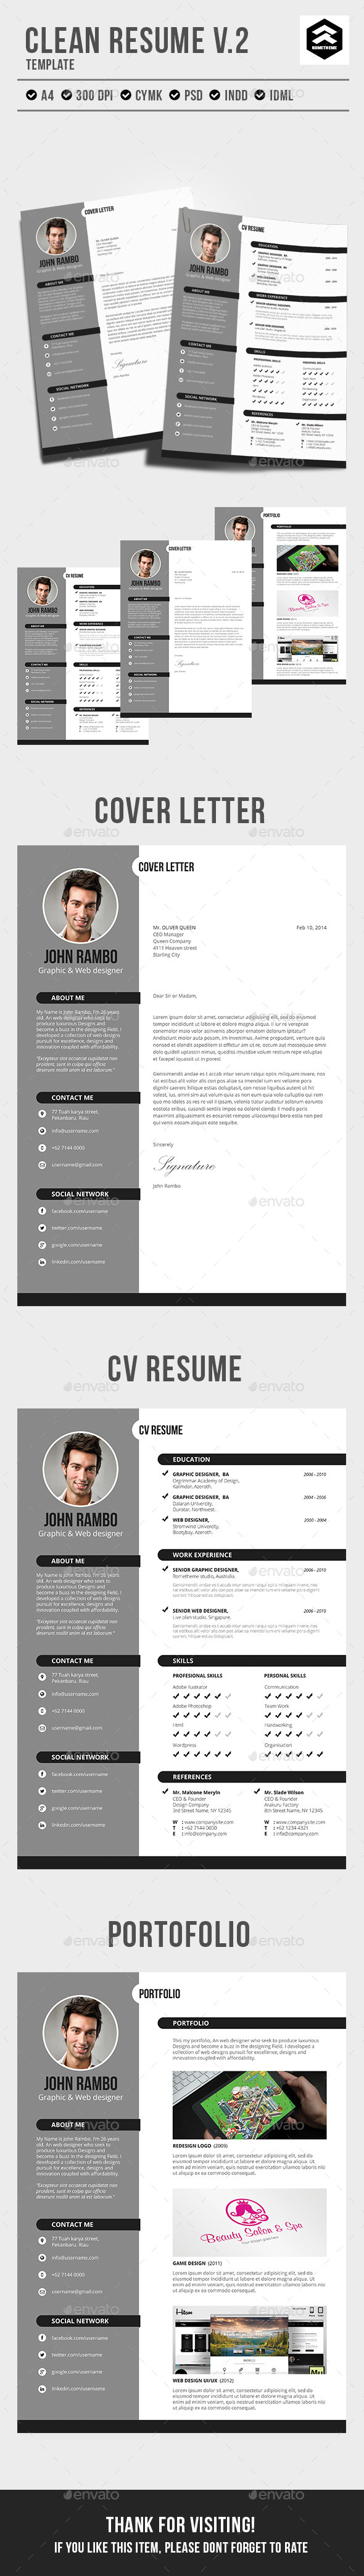 Clean Resume vol.2 - Resumes Stationery